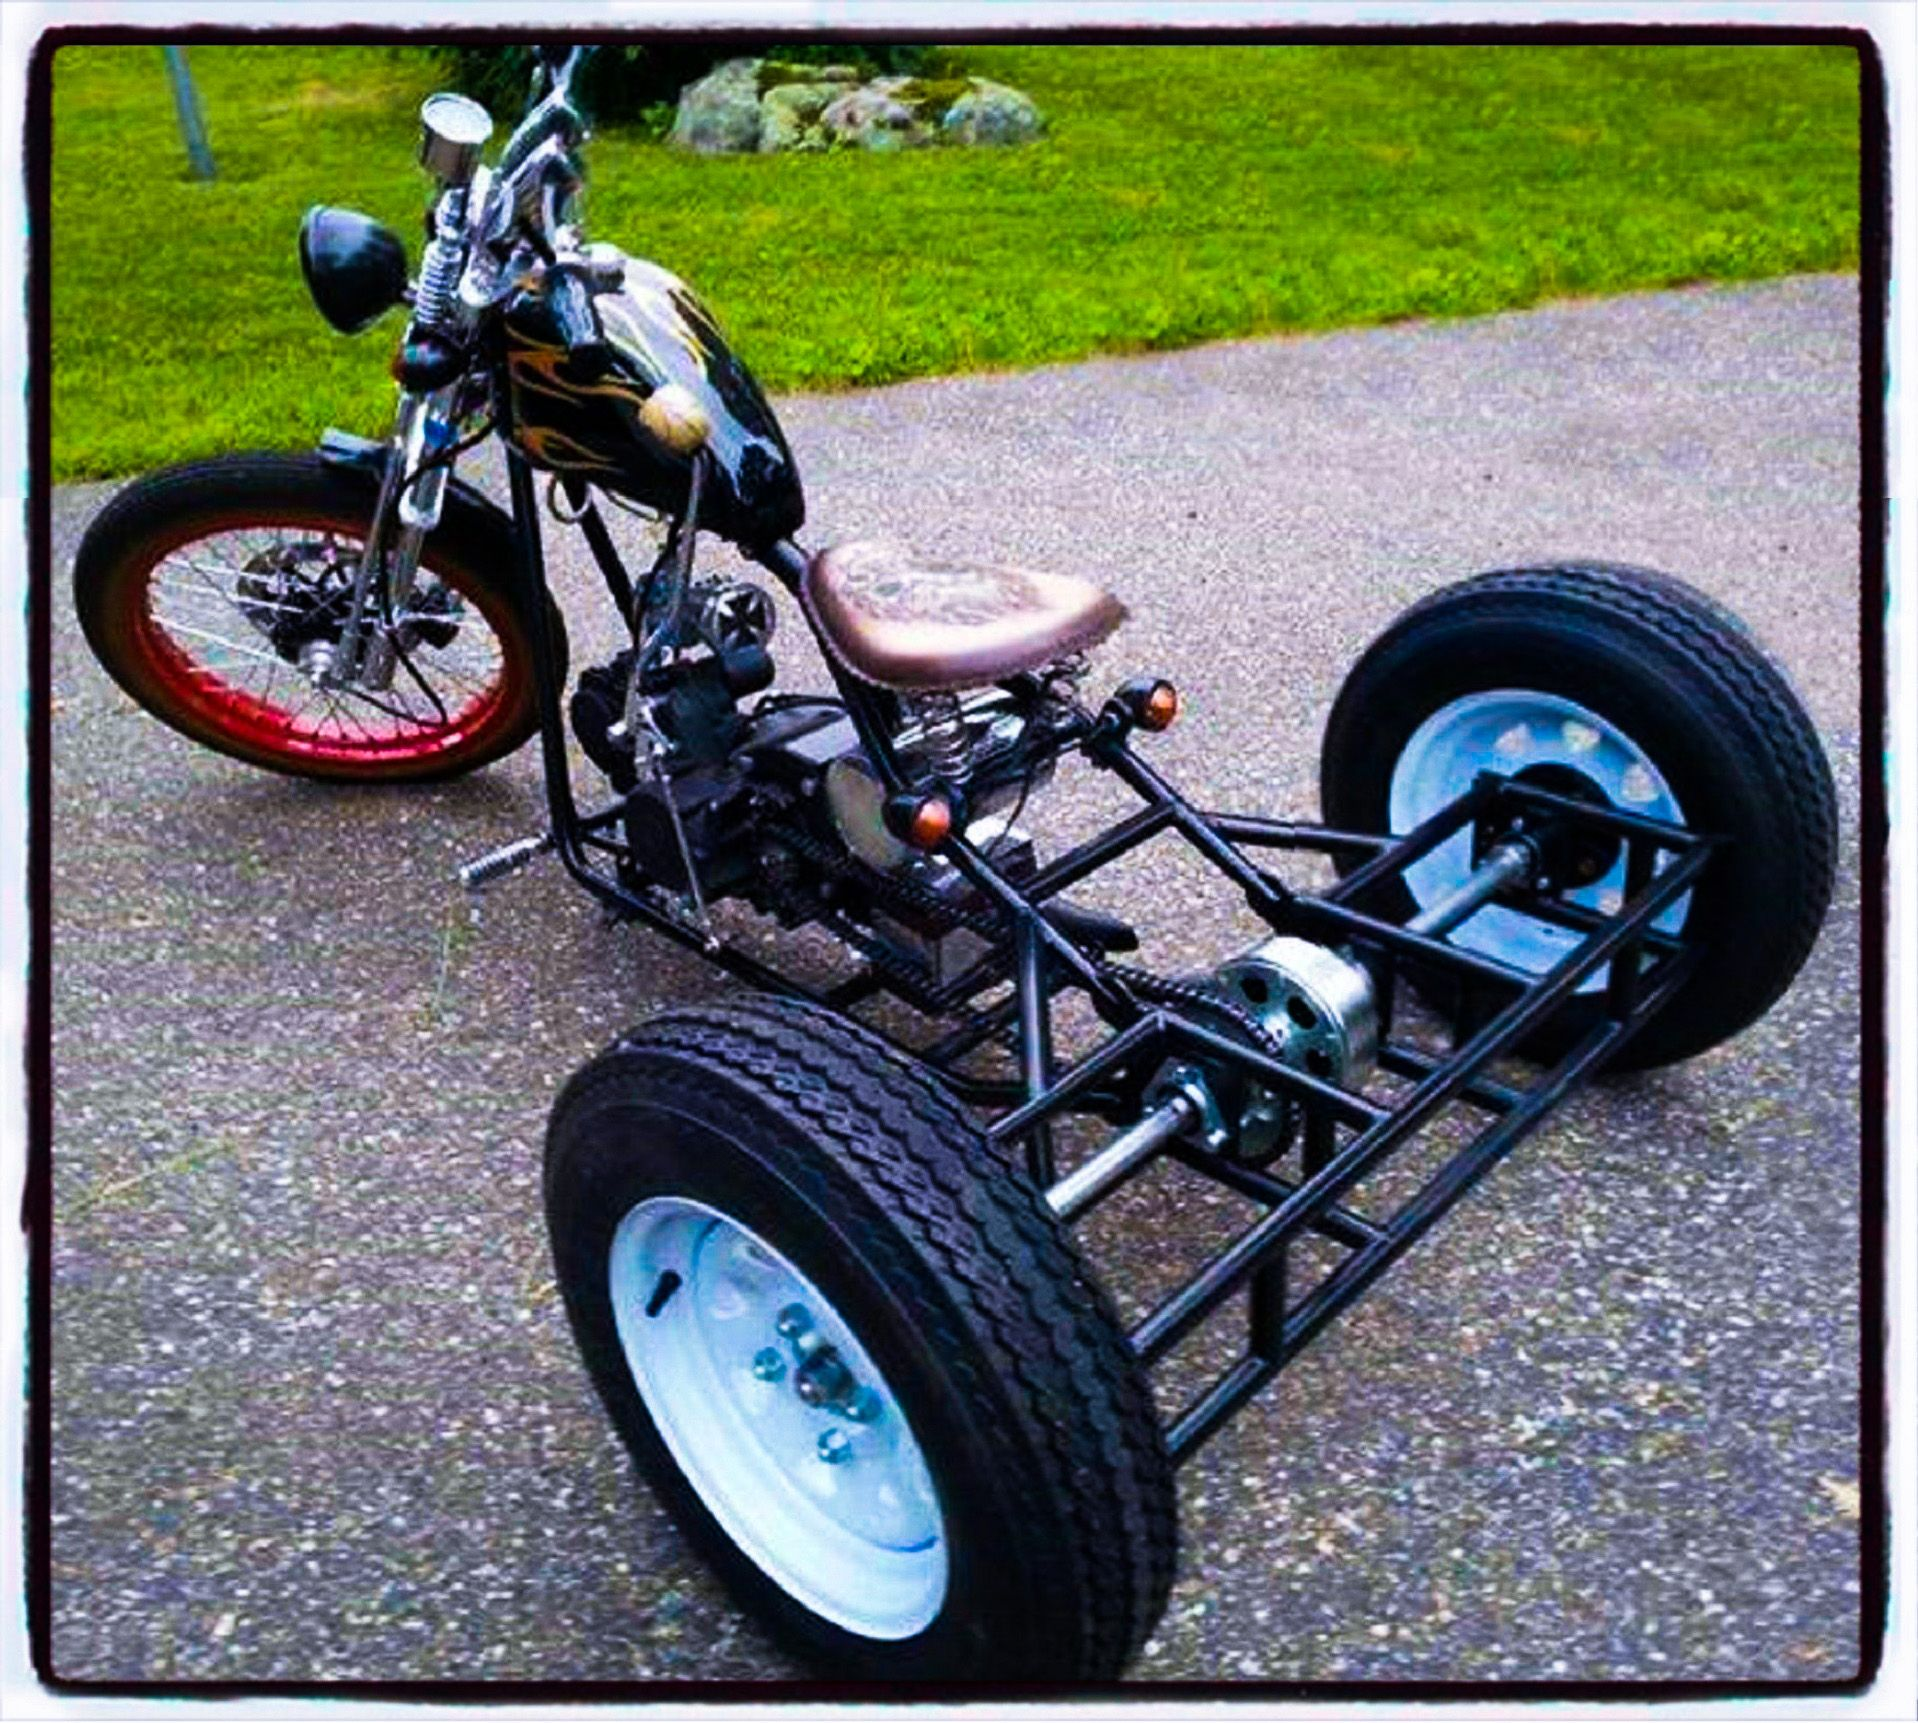 HK-I Kikker 5150 Hardknock Bobber With A Trike Conversion